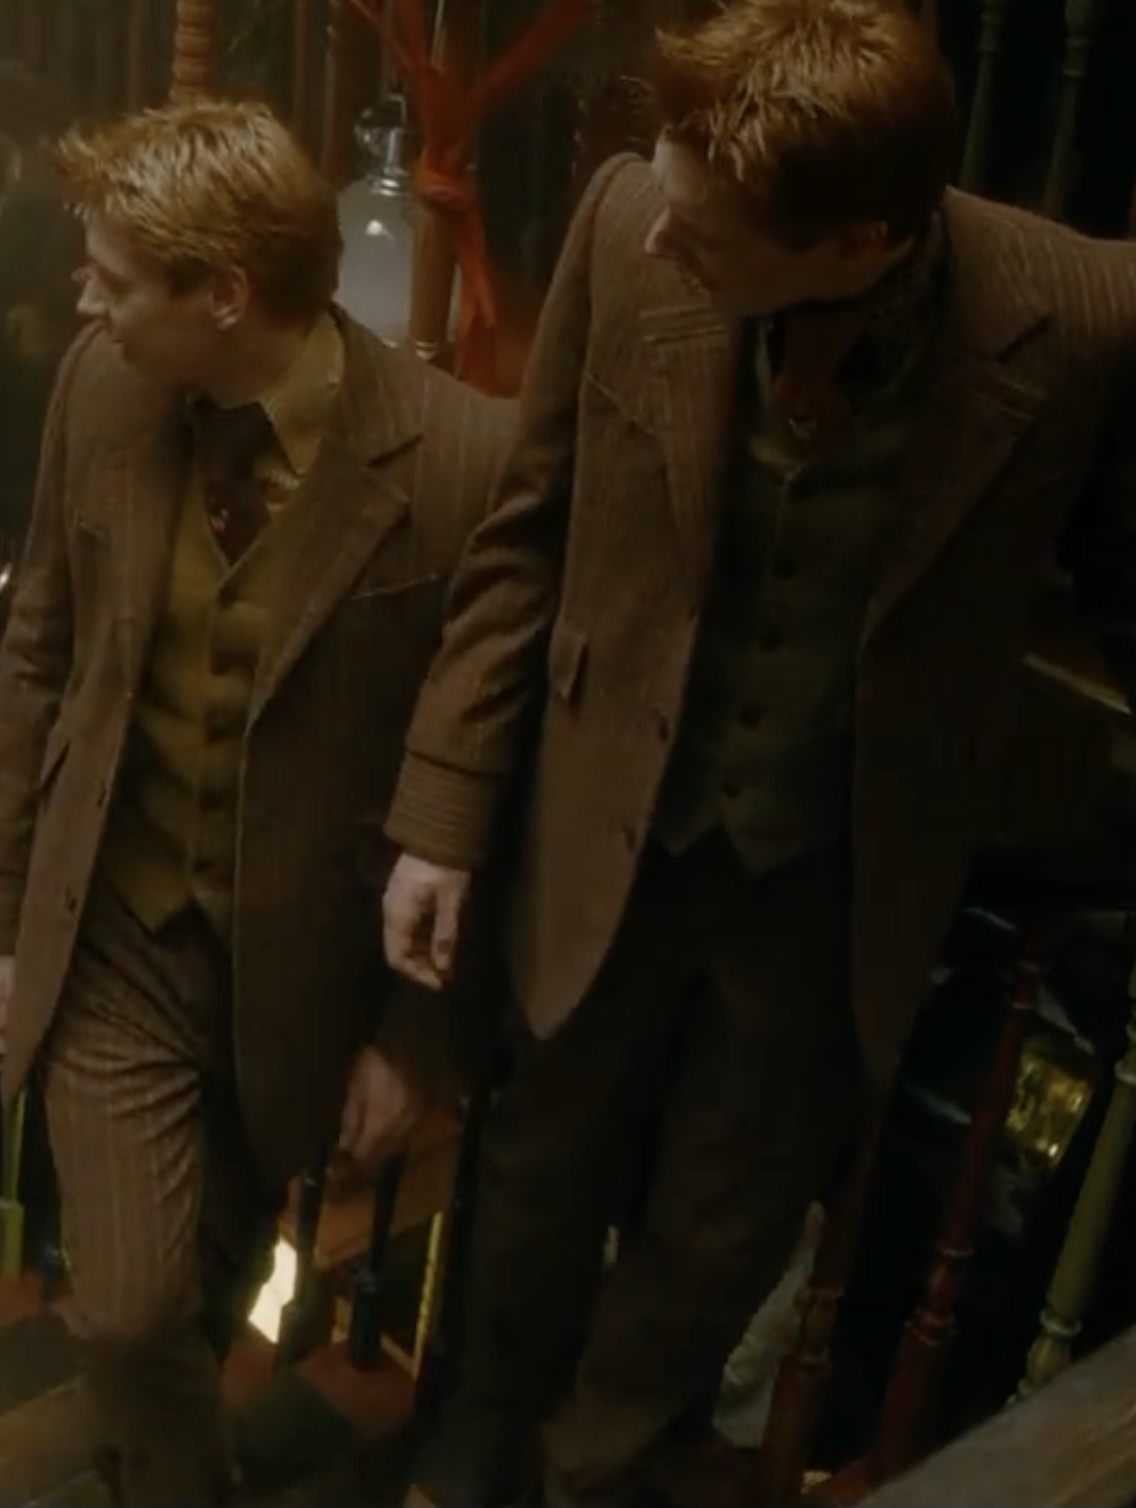 Full Body Weasley Twins Fred And George Weasley Harry Potter Twins